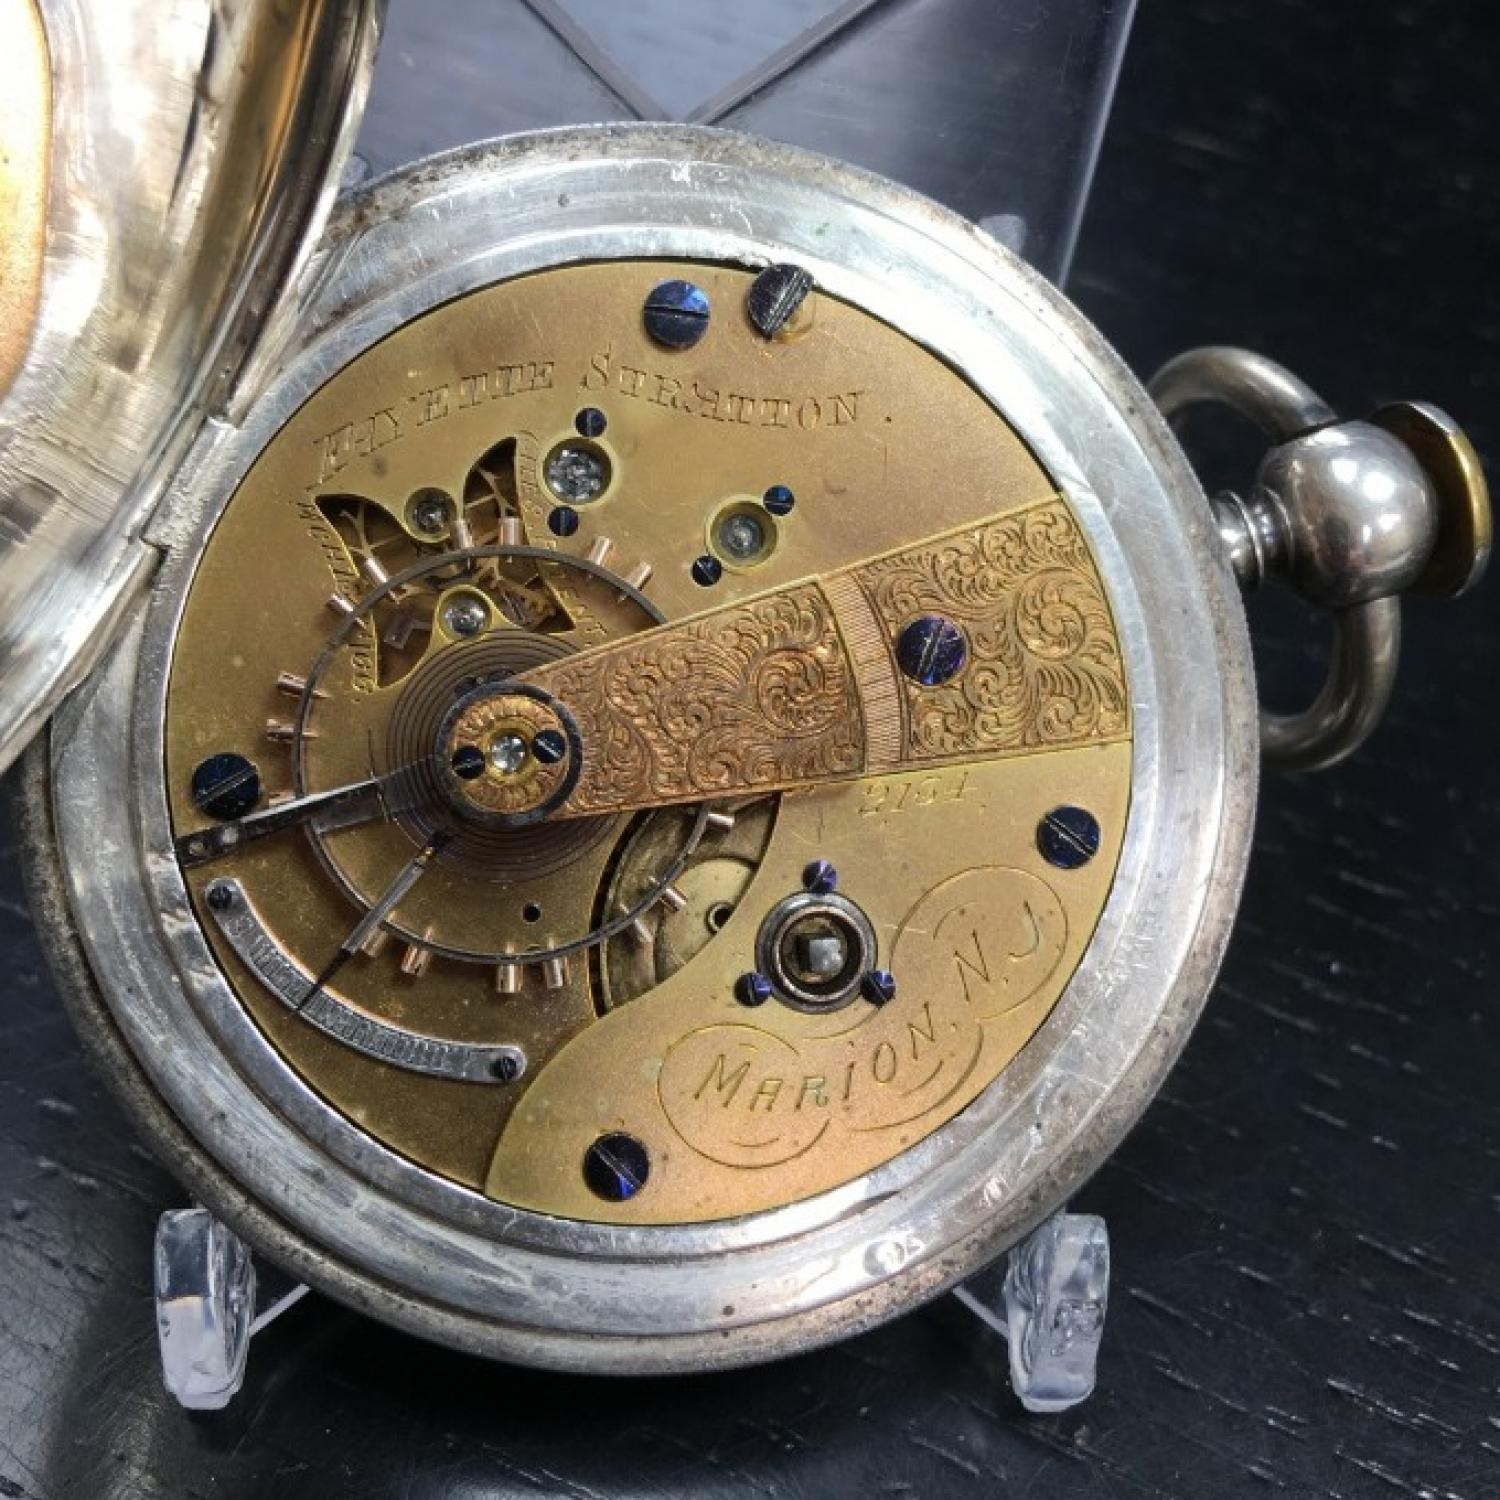 Image of U.S. Watch Co. (Marion, NJ) Fayette Stratton #2134 Movement